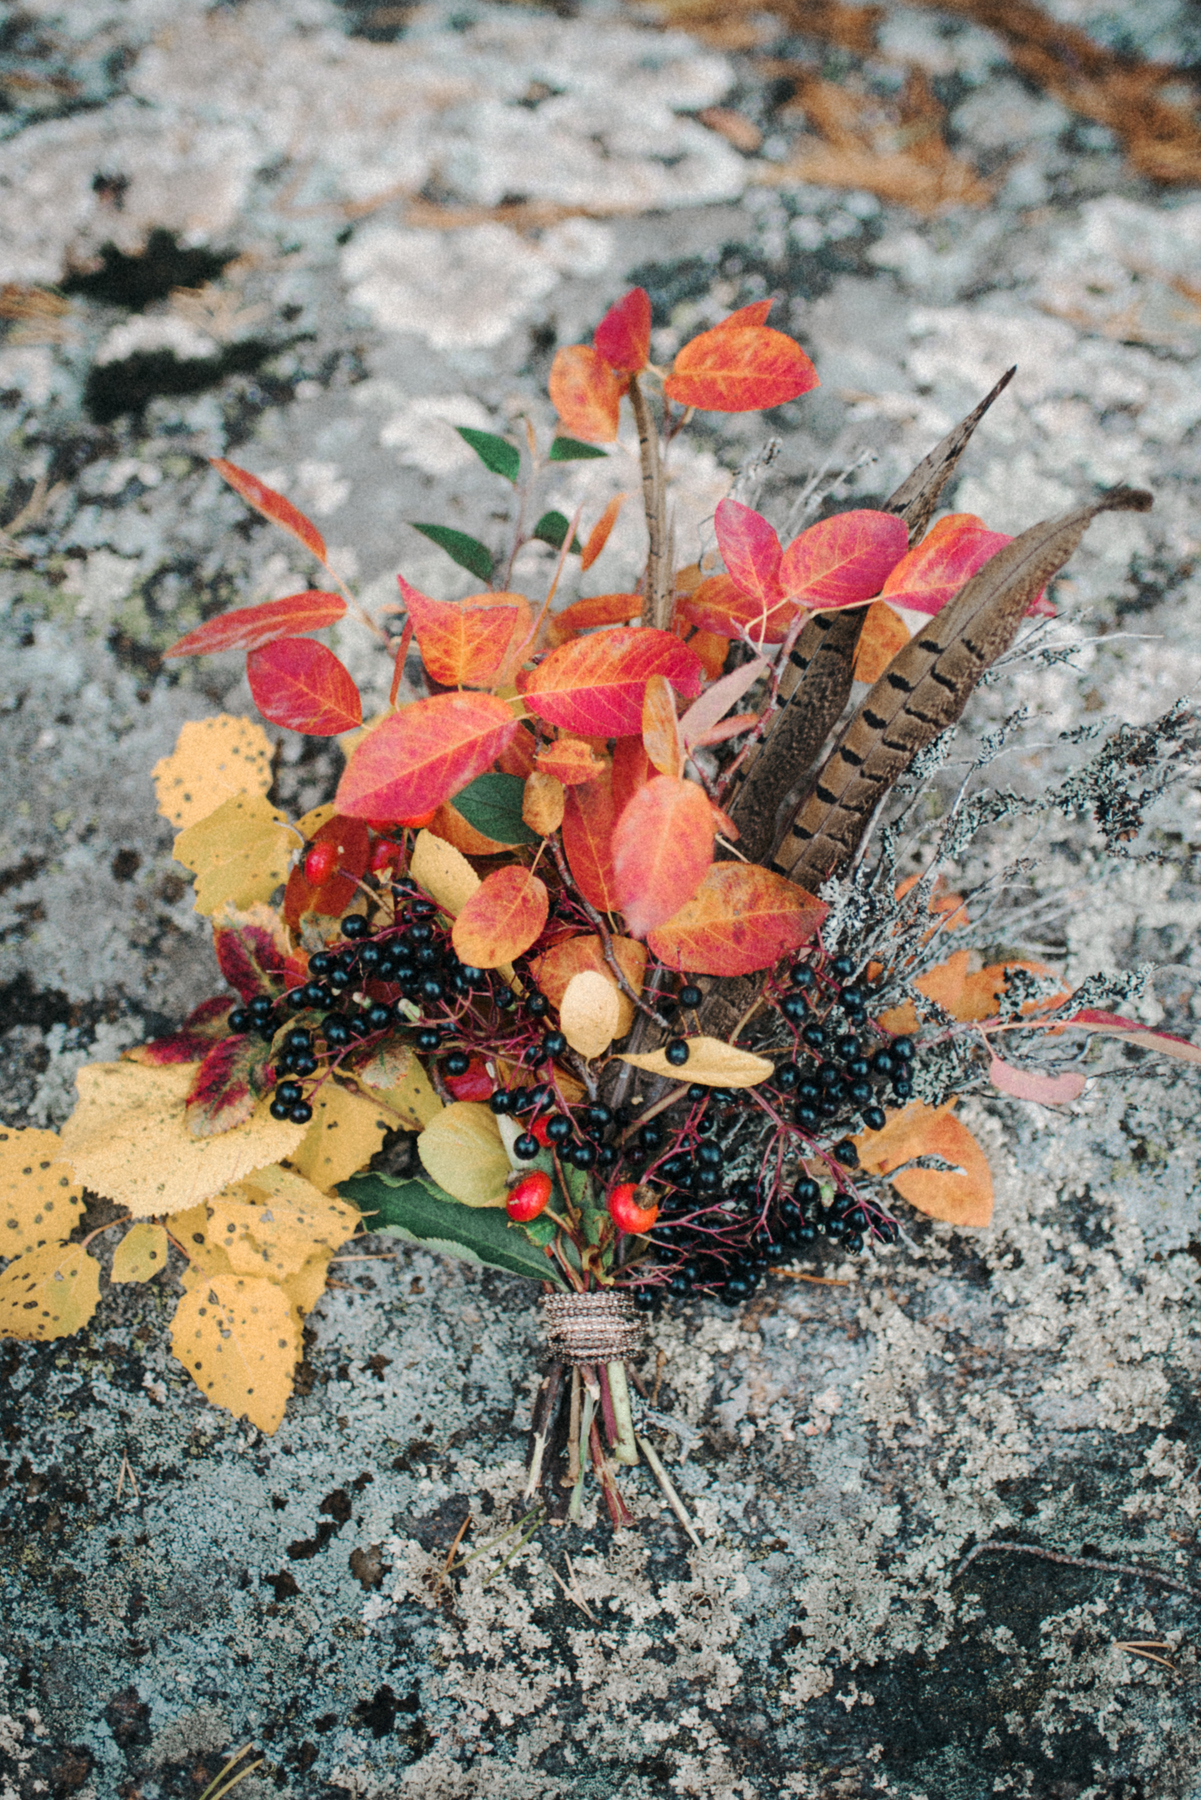 The Nordic Tales of Fall